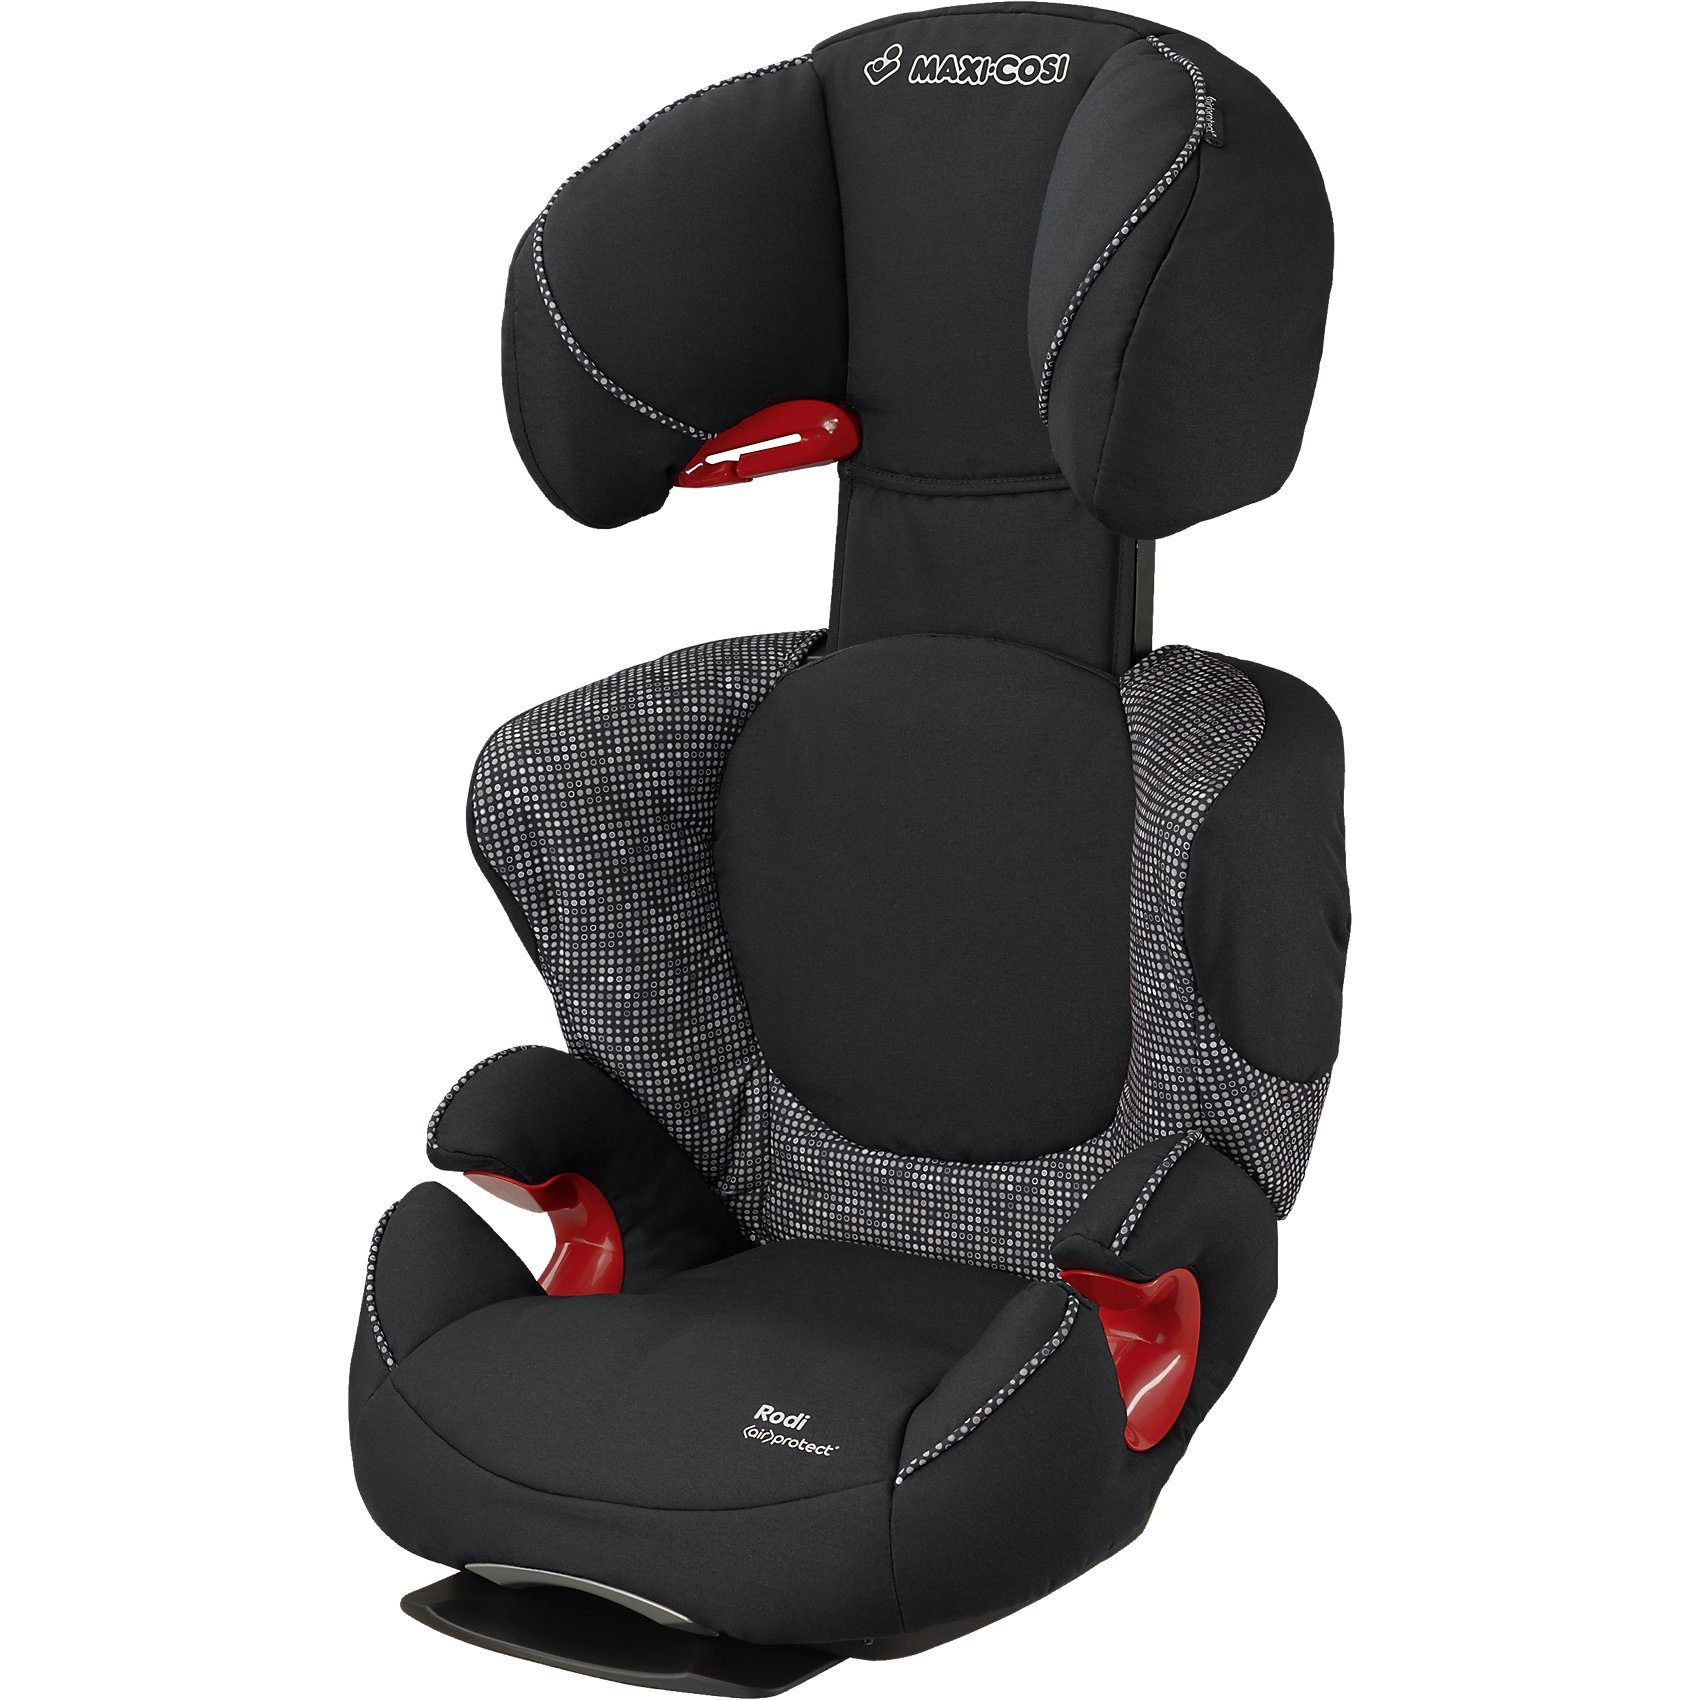 Maxi-Cosi Auto-Kindersitz Rodi AirProtect, Digital Black, 2015